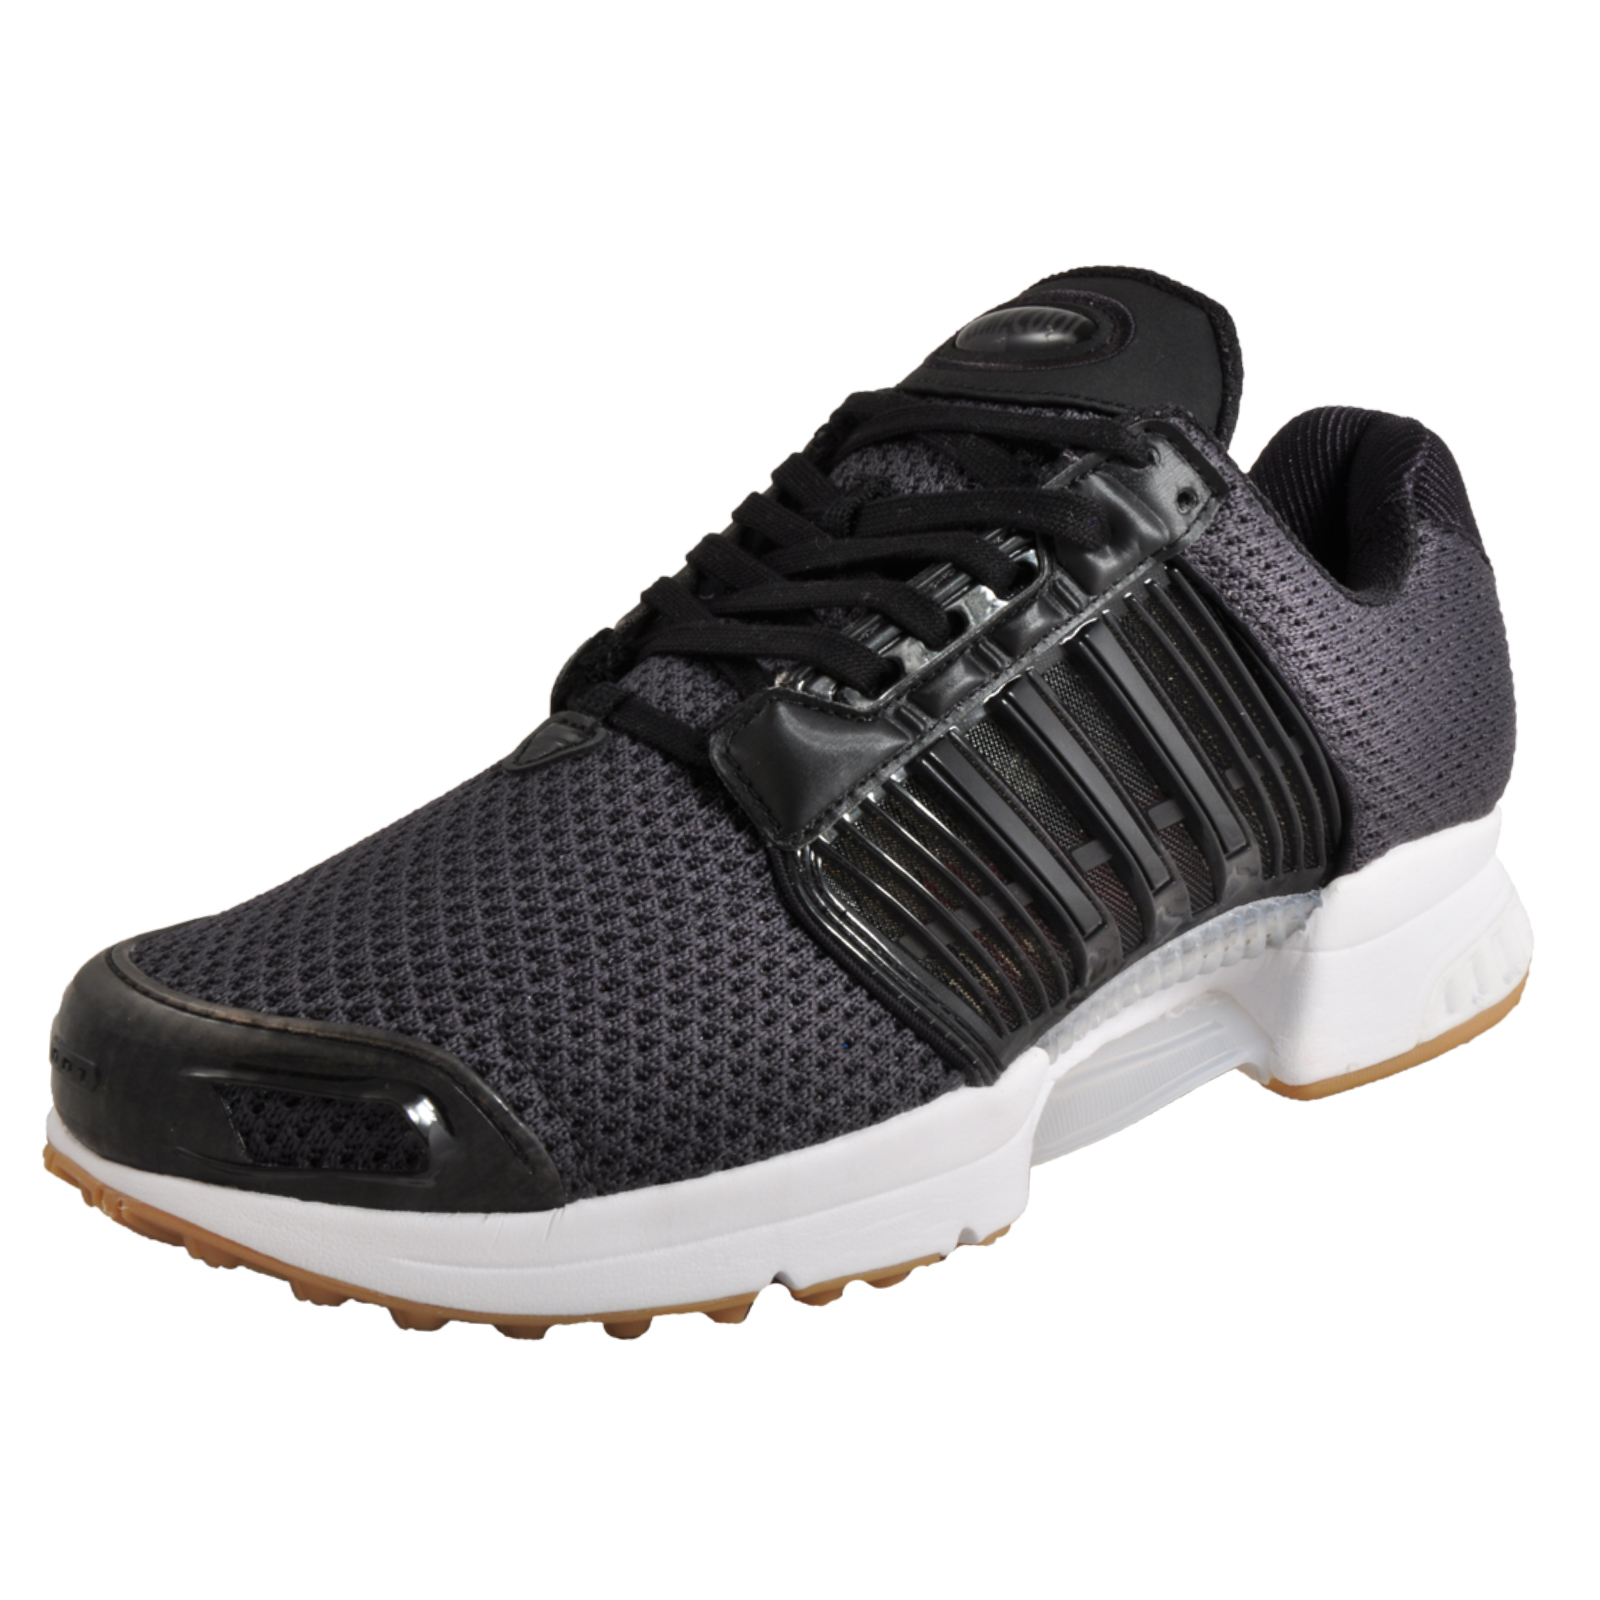 d015781eda6 Details about Adidas Cimacool 1 Men s Retro Running Shoes Fitness Gym Trainers  Black